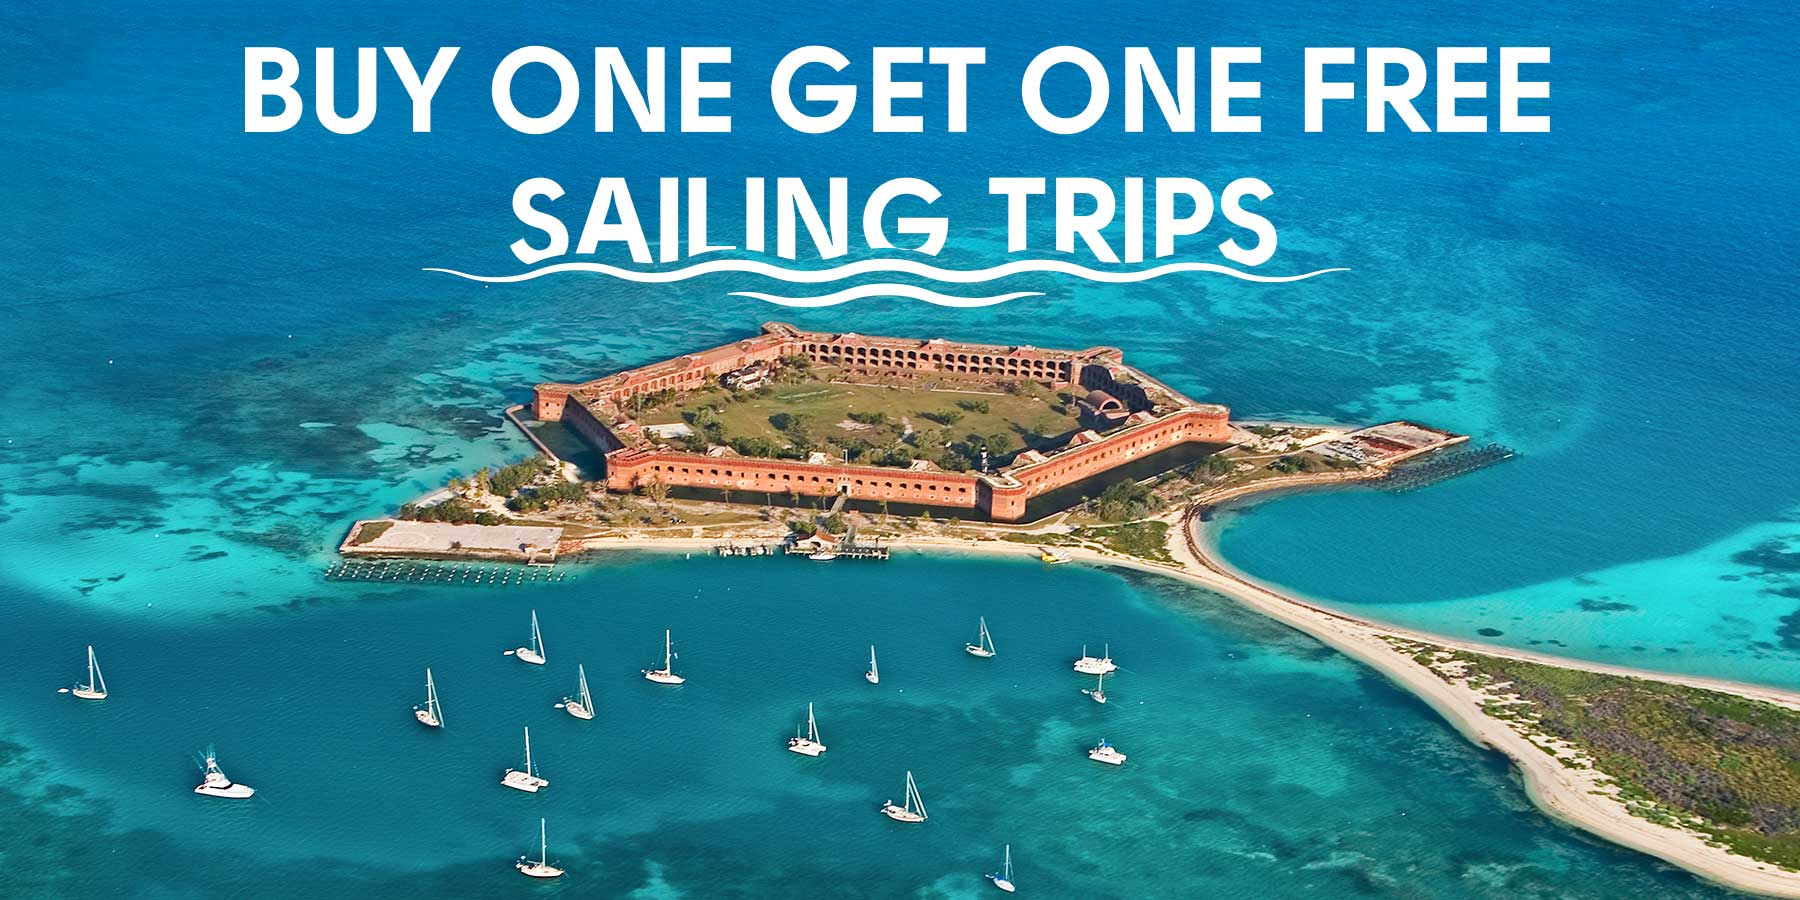 Buy one get one free on sailing trips